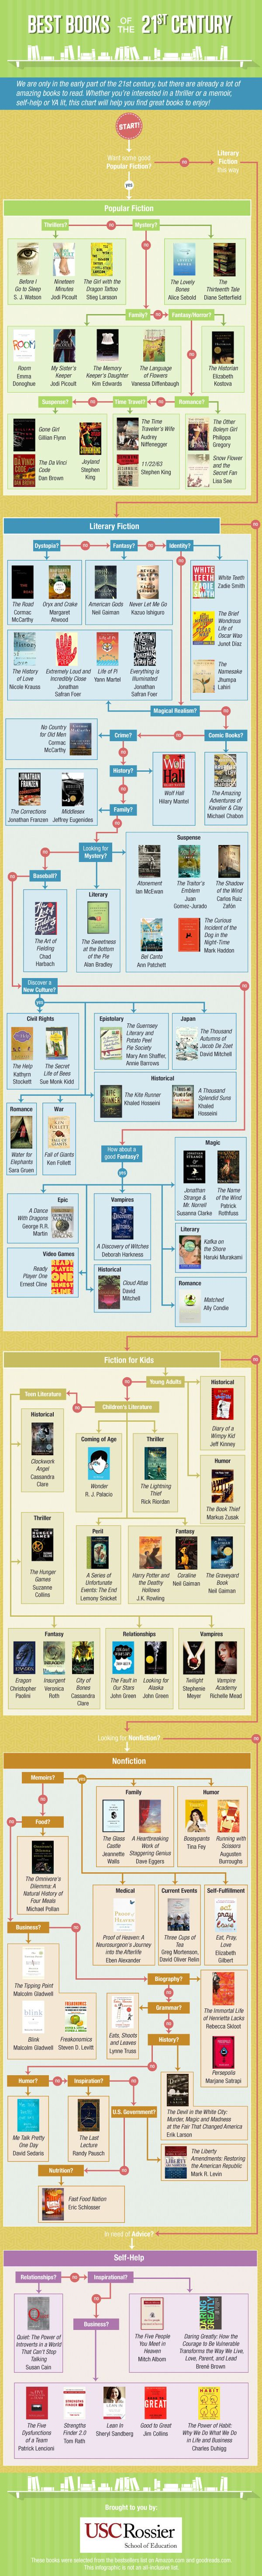 Best Books Of The 21st Century   #infographic #Books